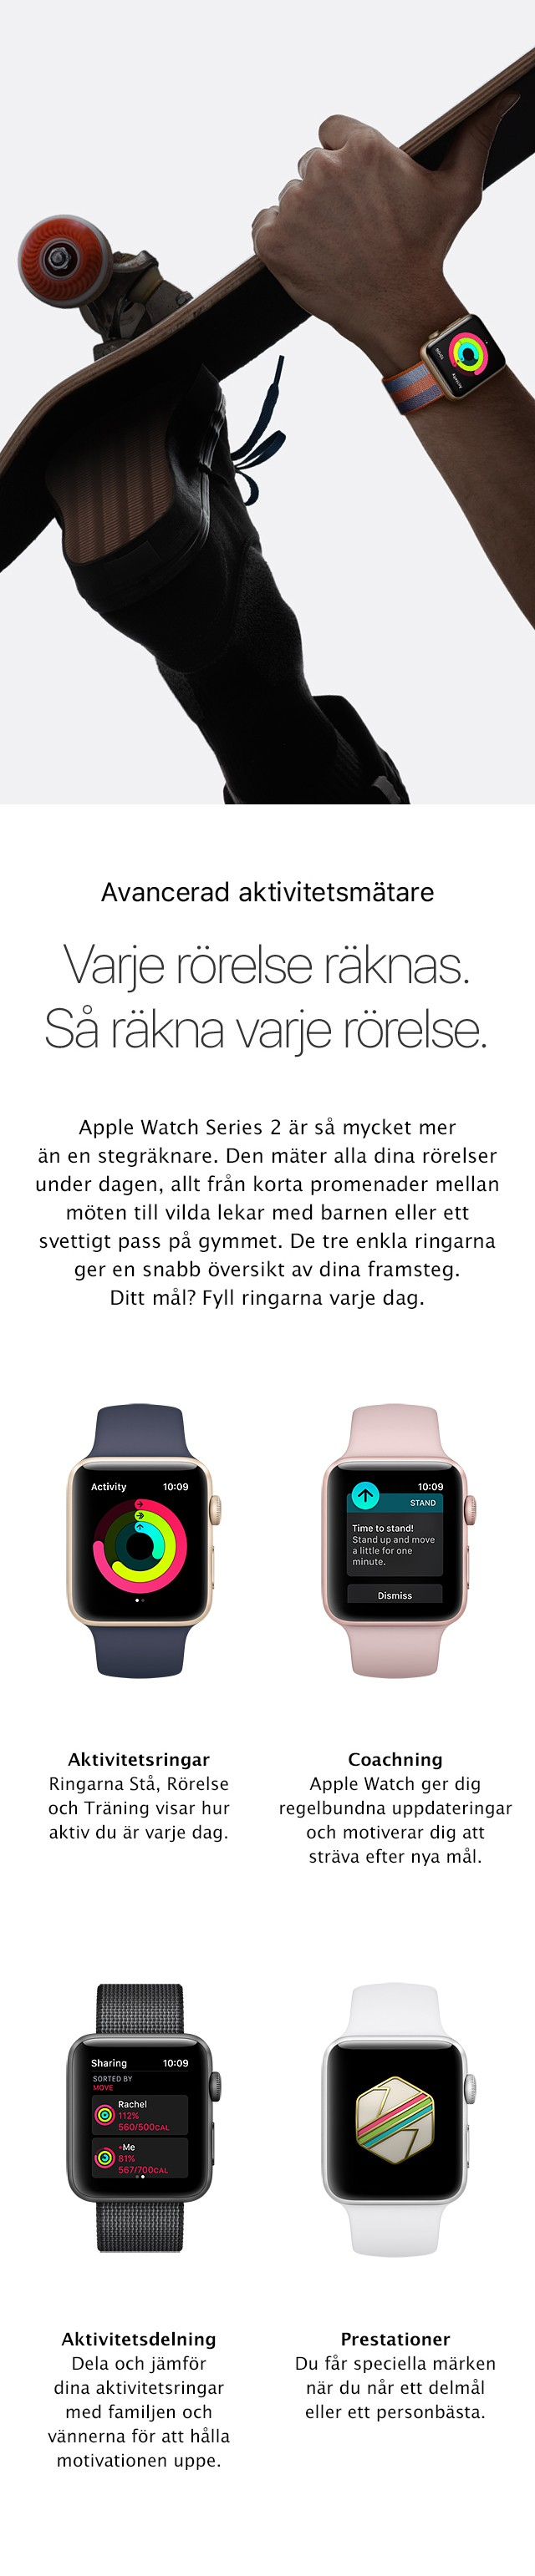 Time, machine, backup from, vol 2 to, vol 1? Apple iPhone 6s skladem